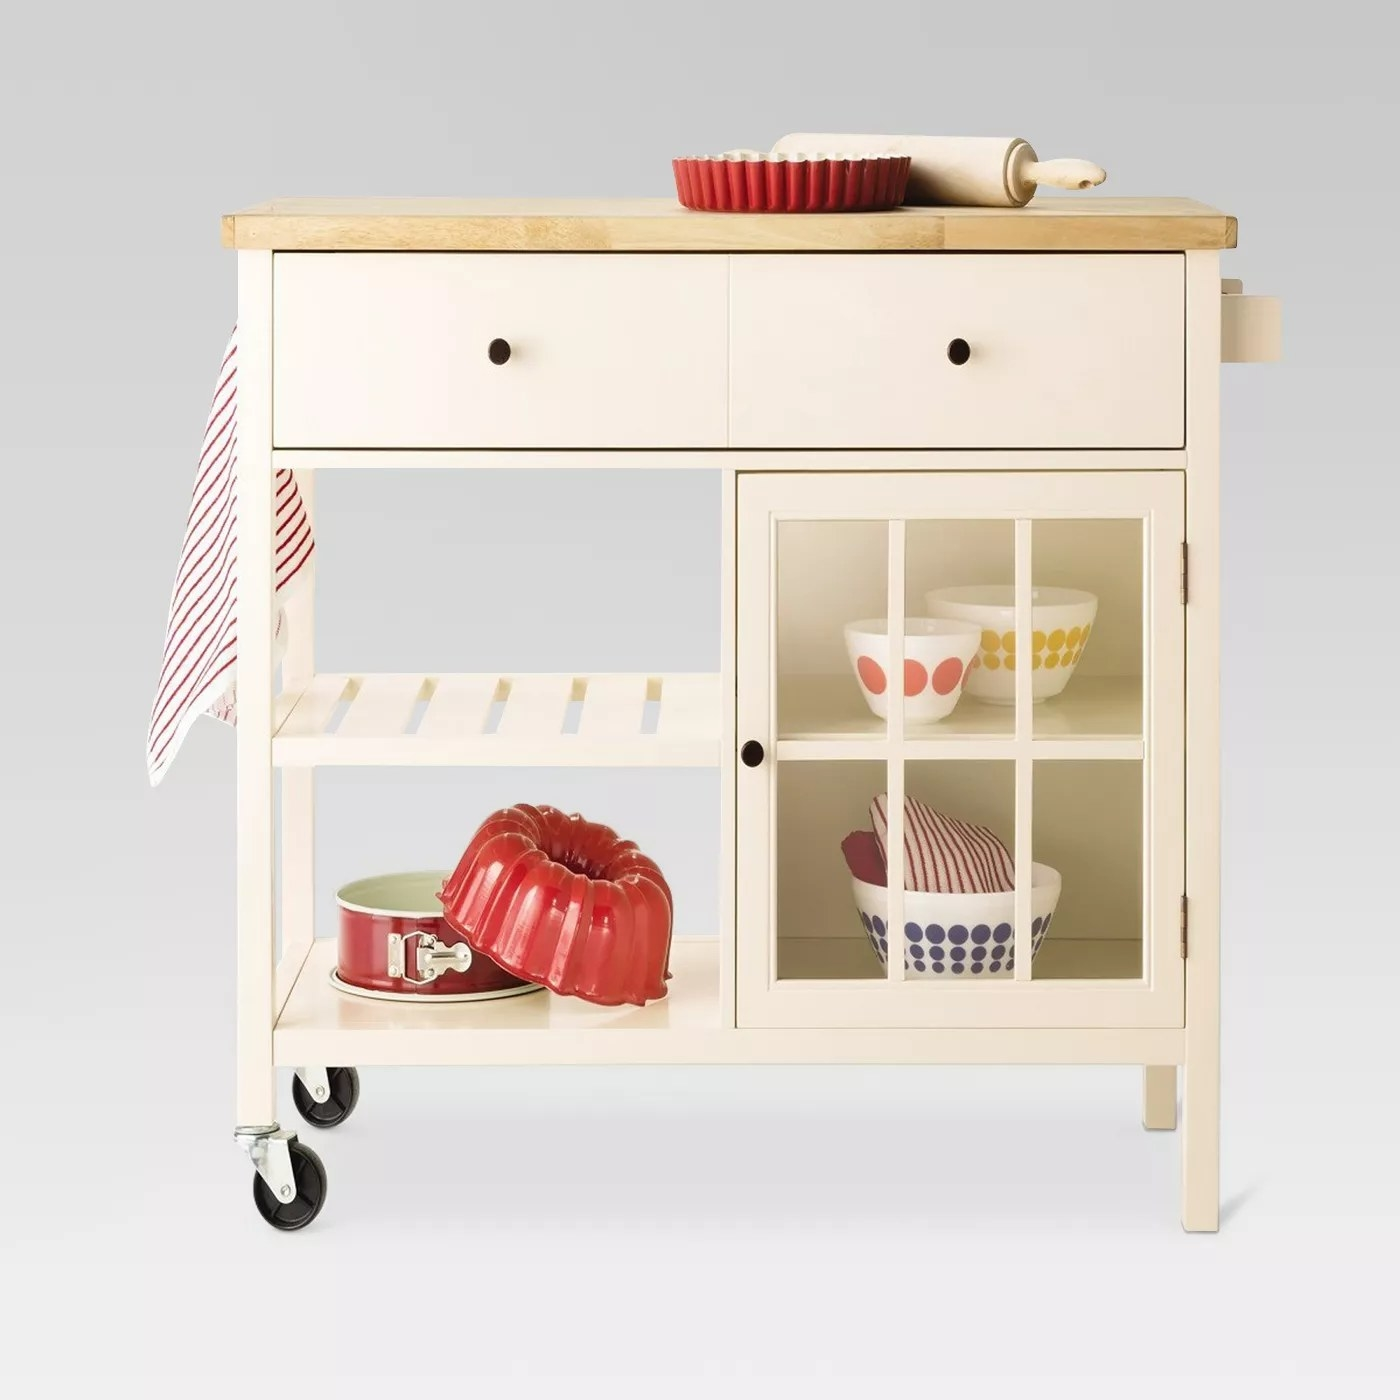 The kitchen cart on two wheels filled with items